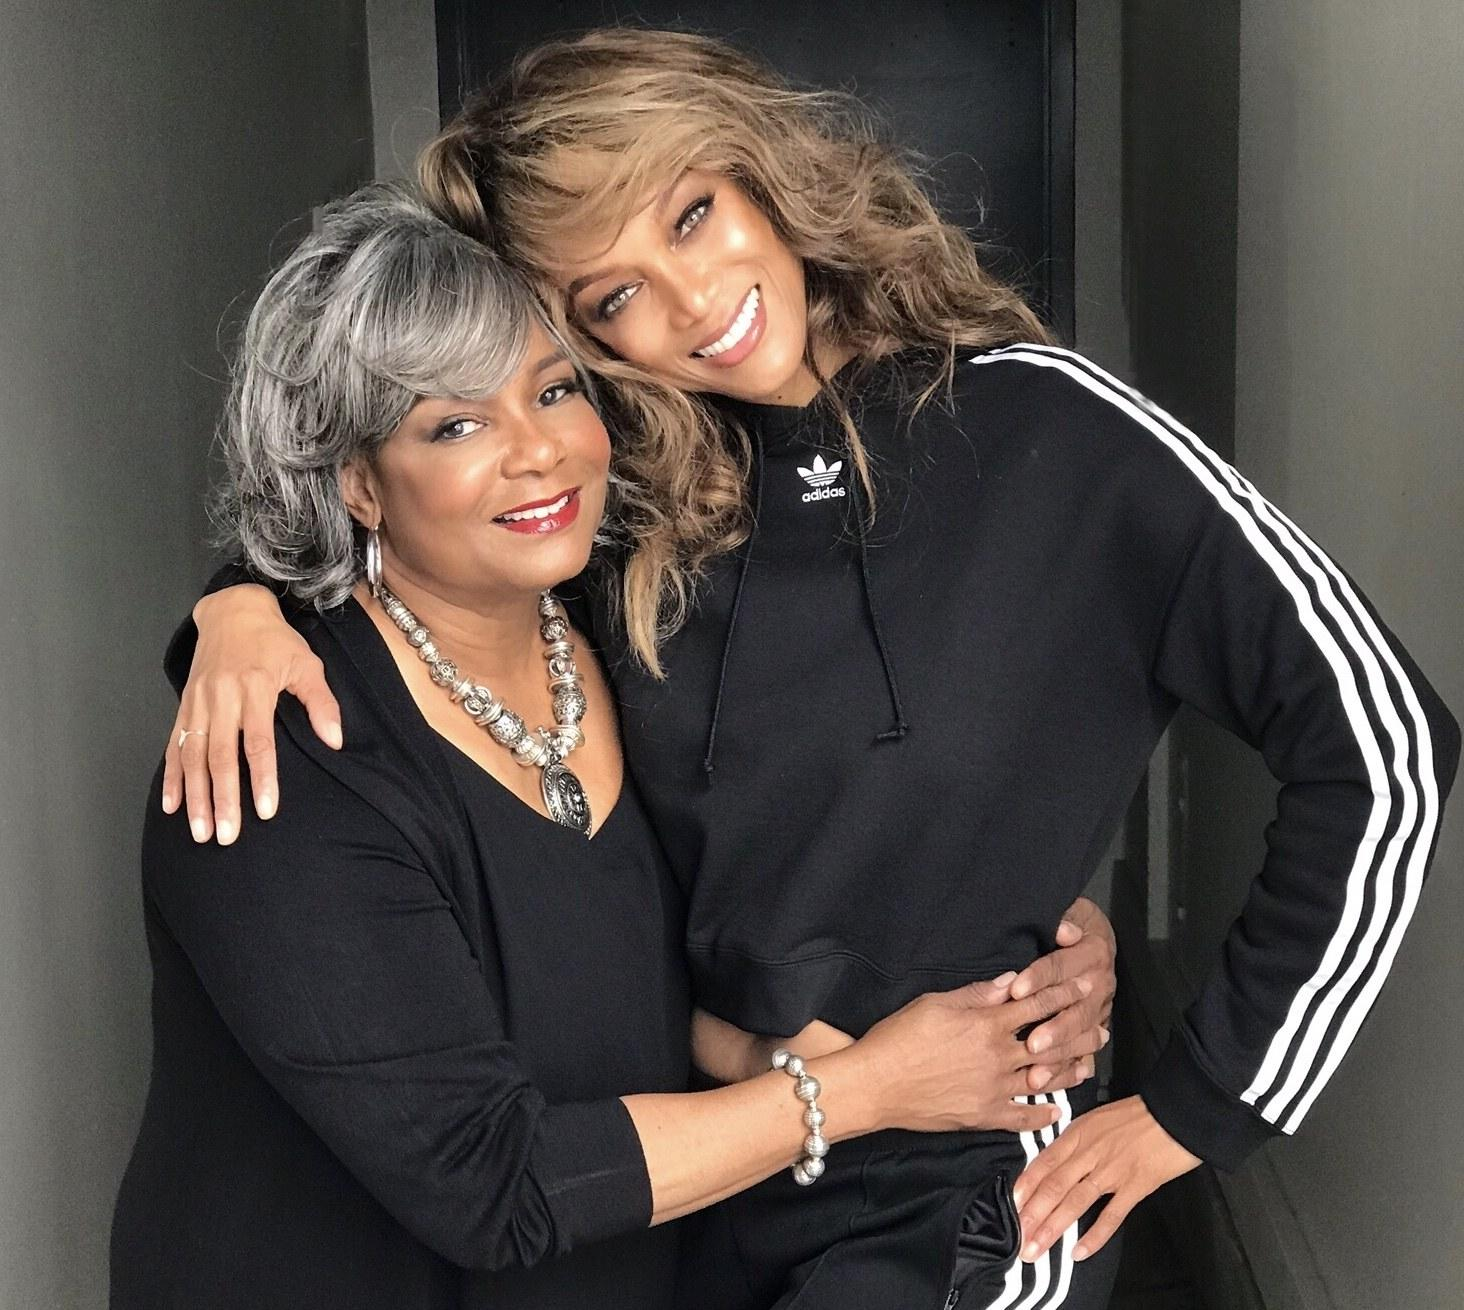 Tyra Banks Agency: Tyra Banks Wouldn't Have Made It If Her Mom Didn't Support